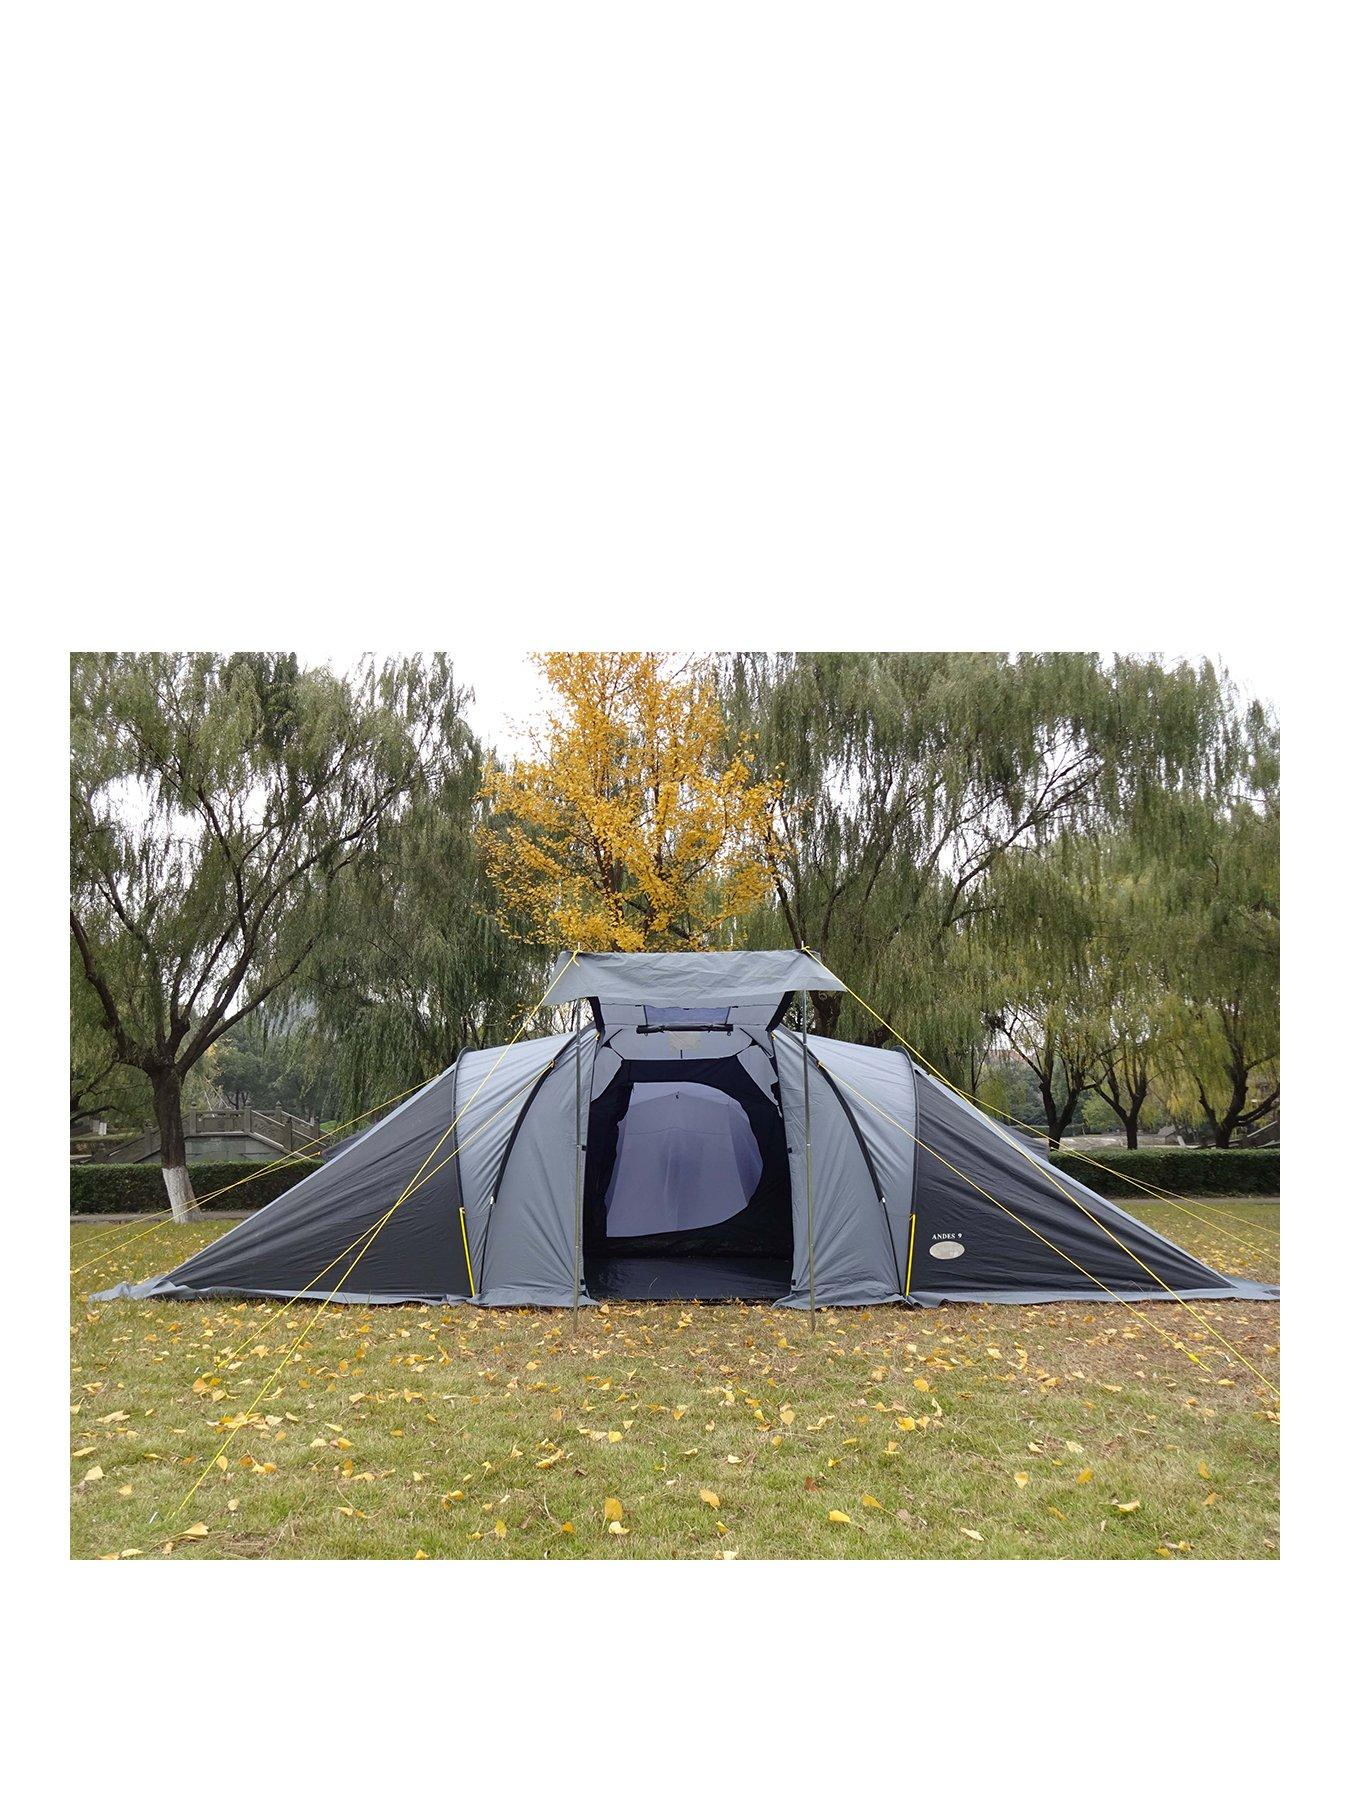 Tents   Tents For Camping   Family Tents Littlewoods